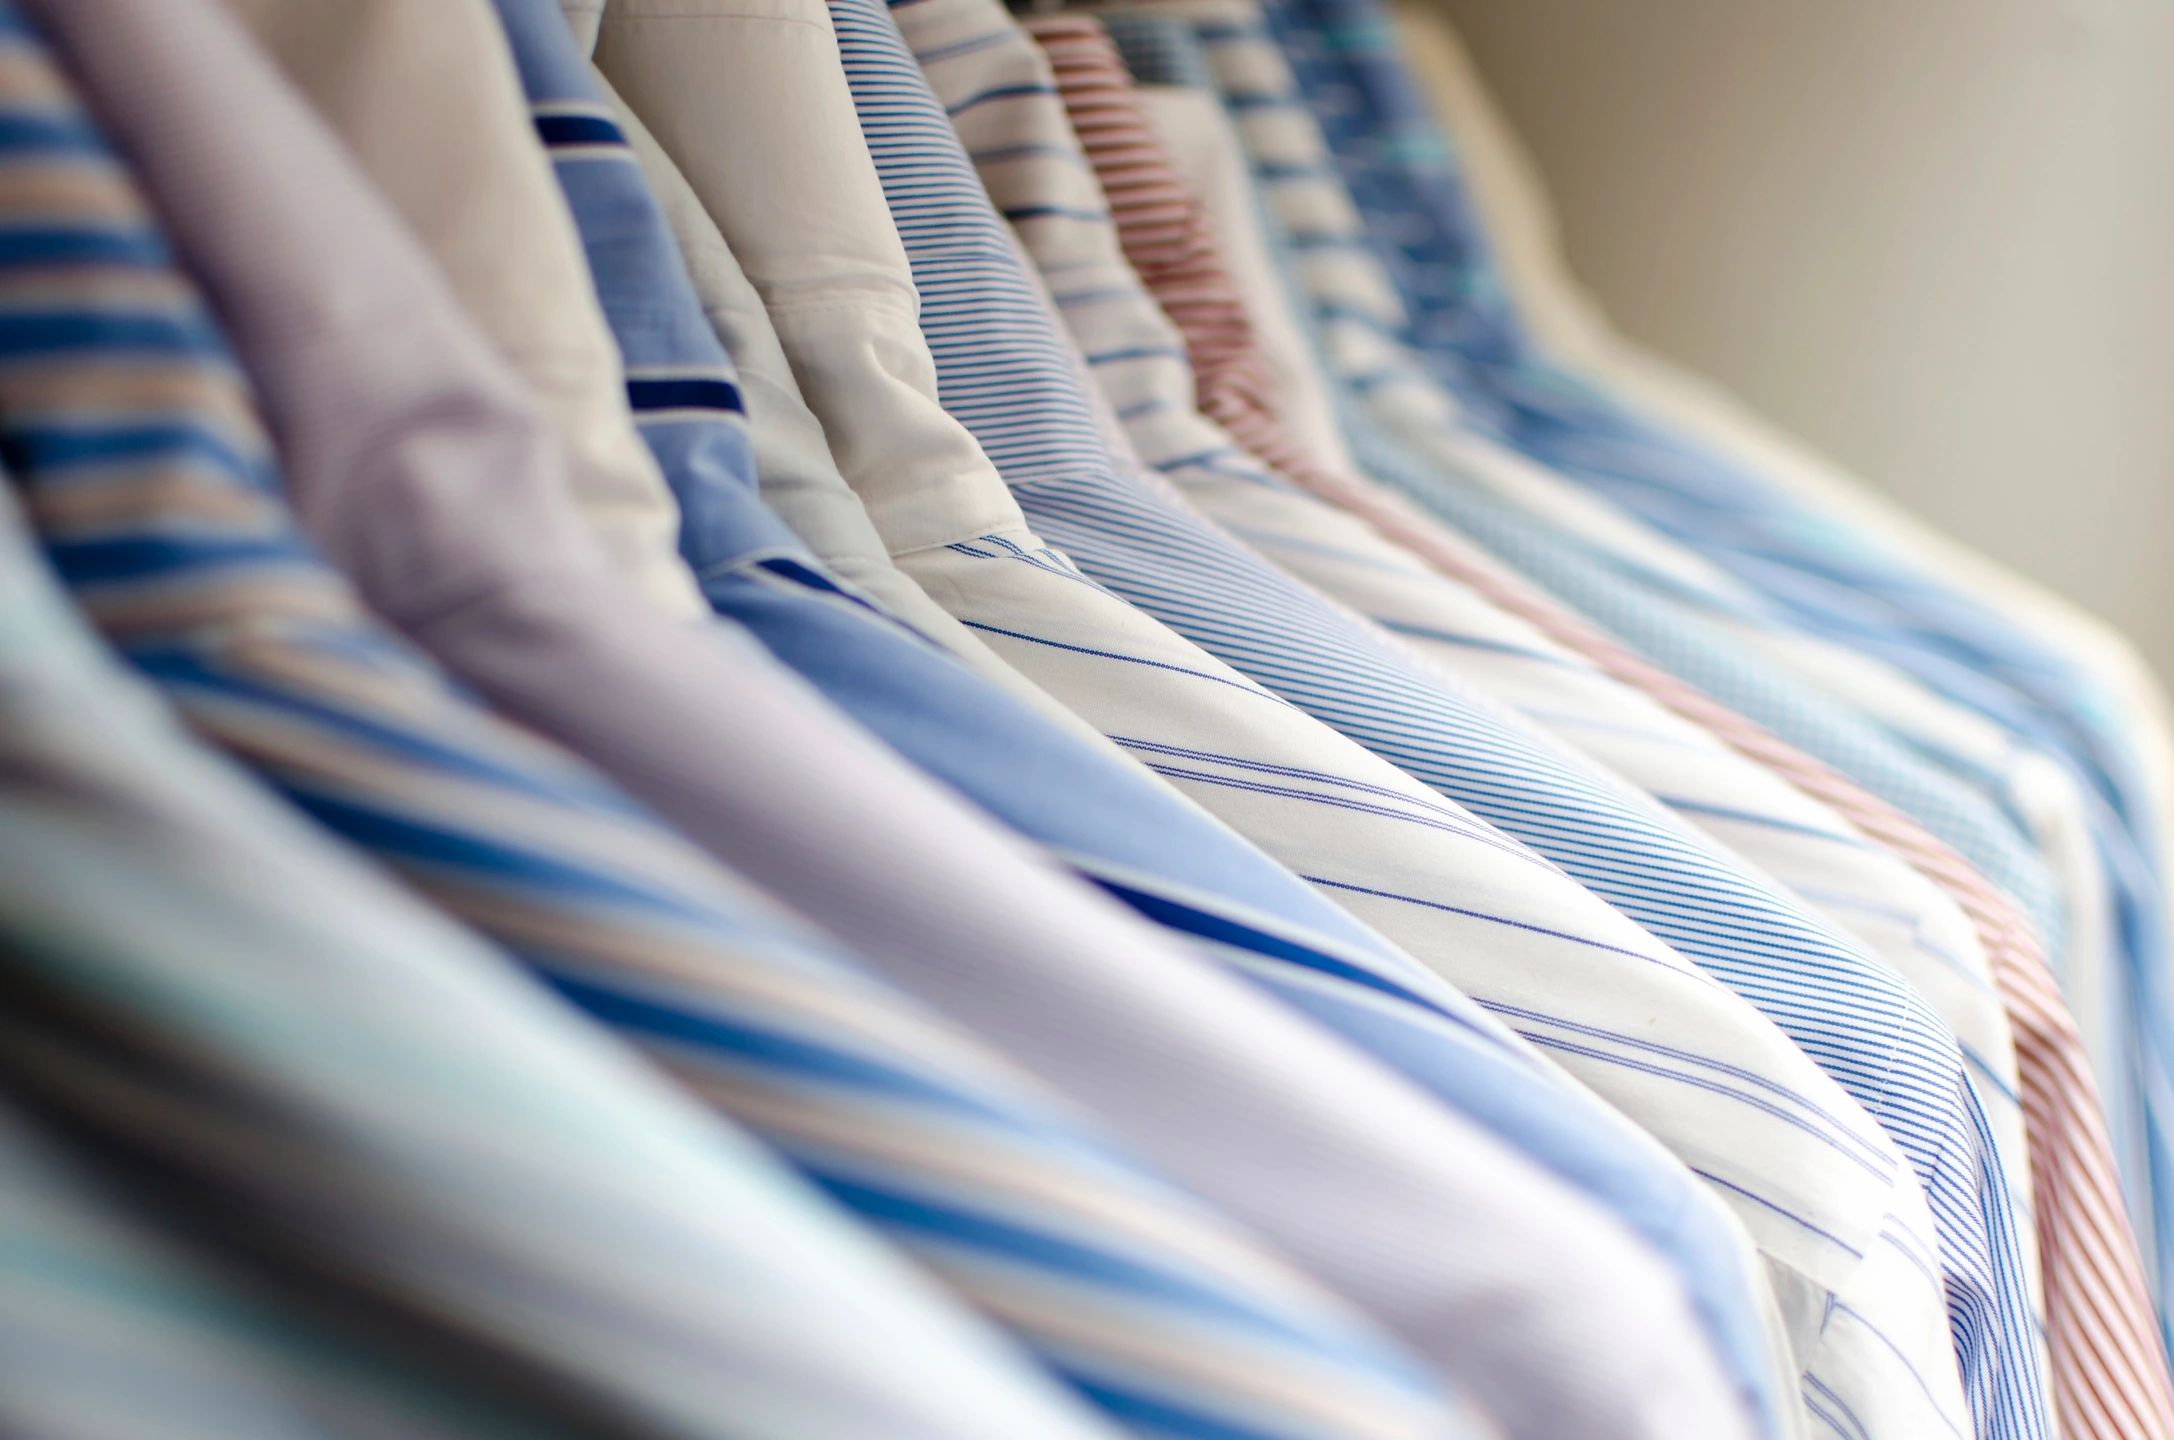 Are you or your spouse tired of ironing shirts? Bring them into Babbel's and we'll take care of it!